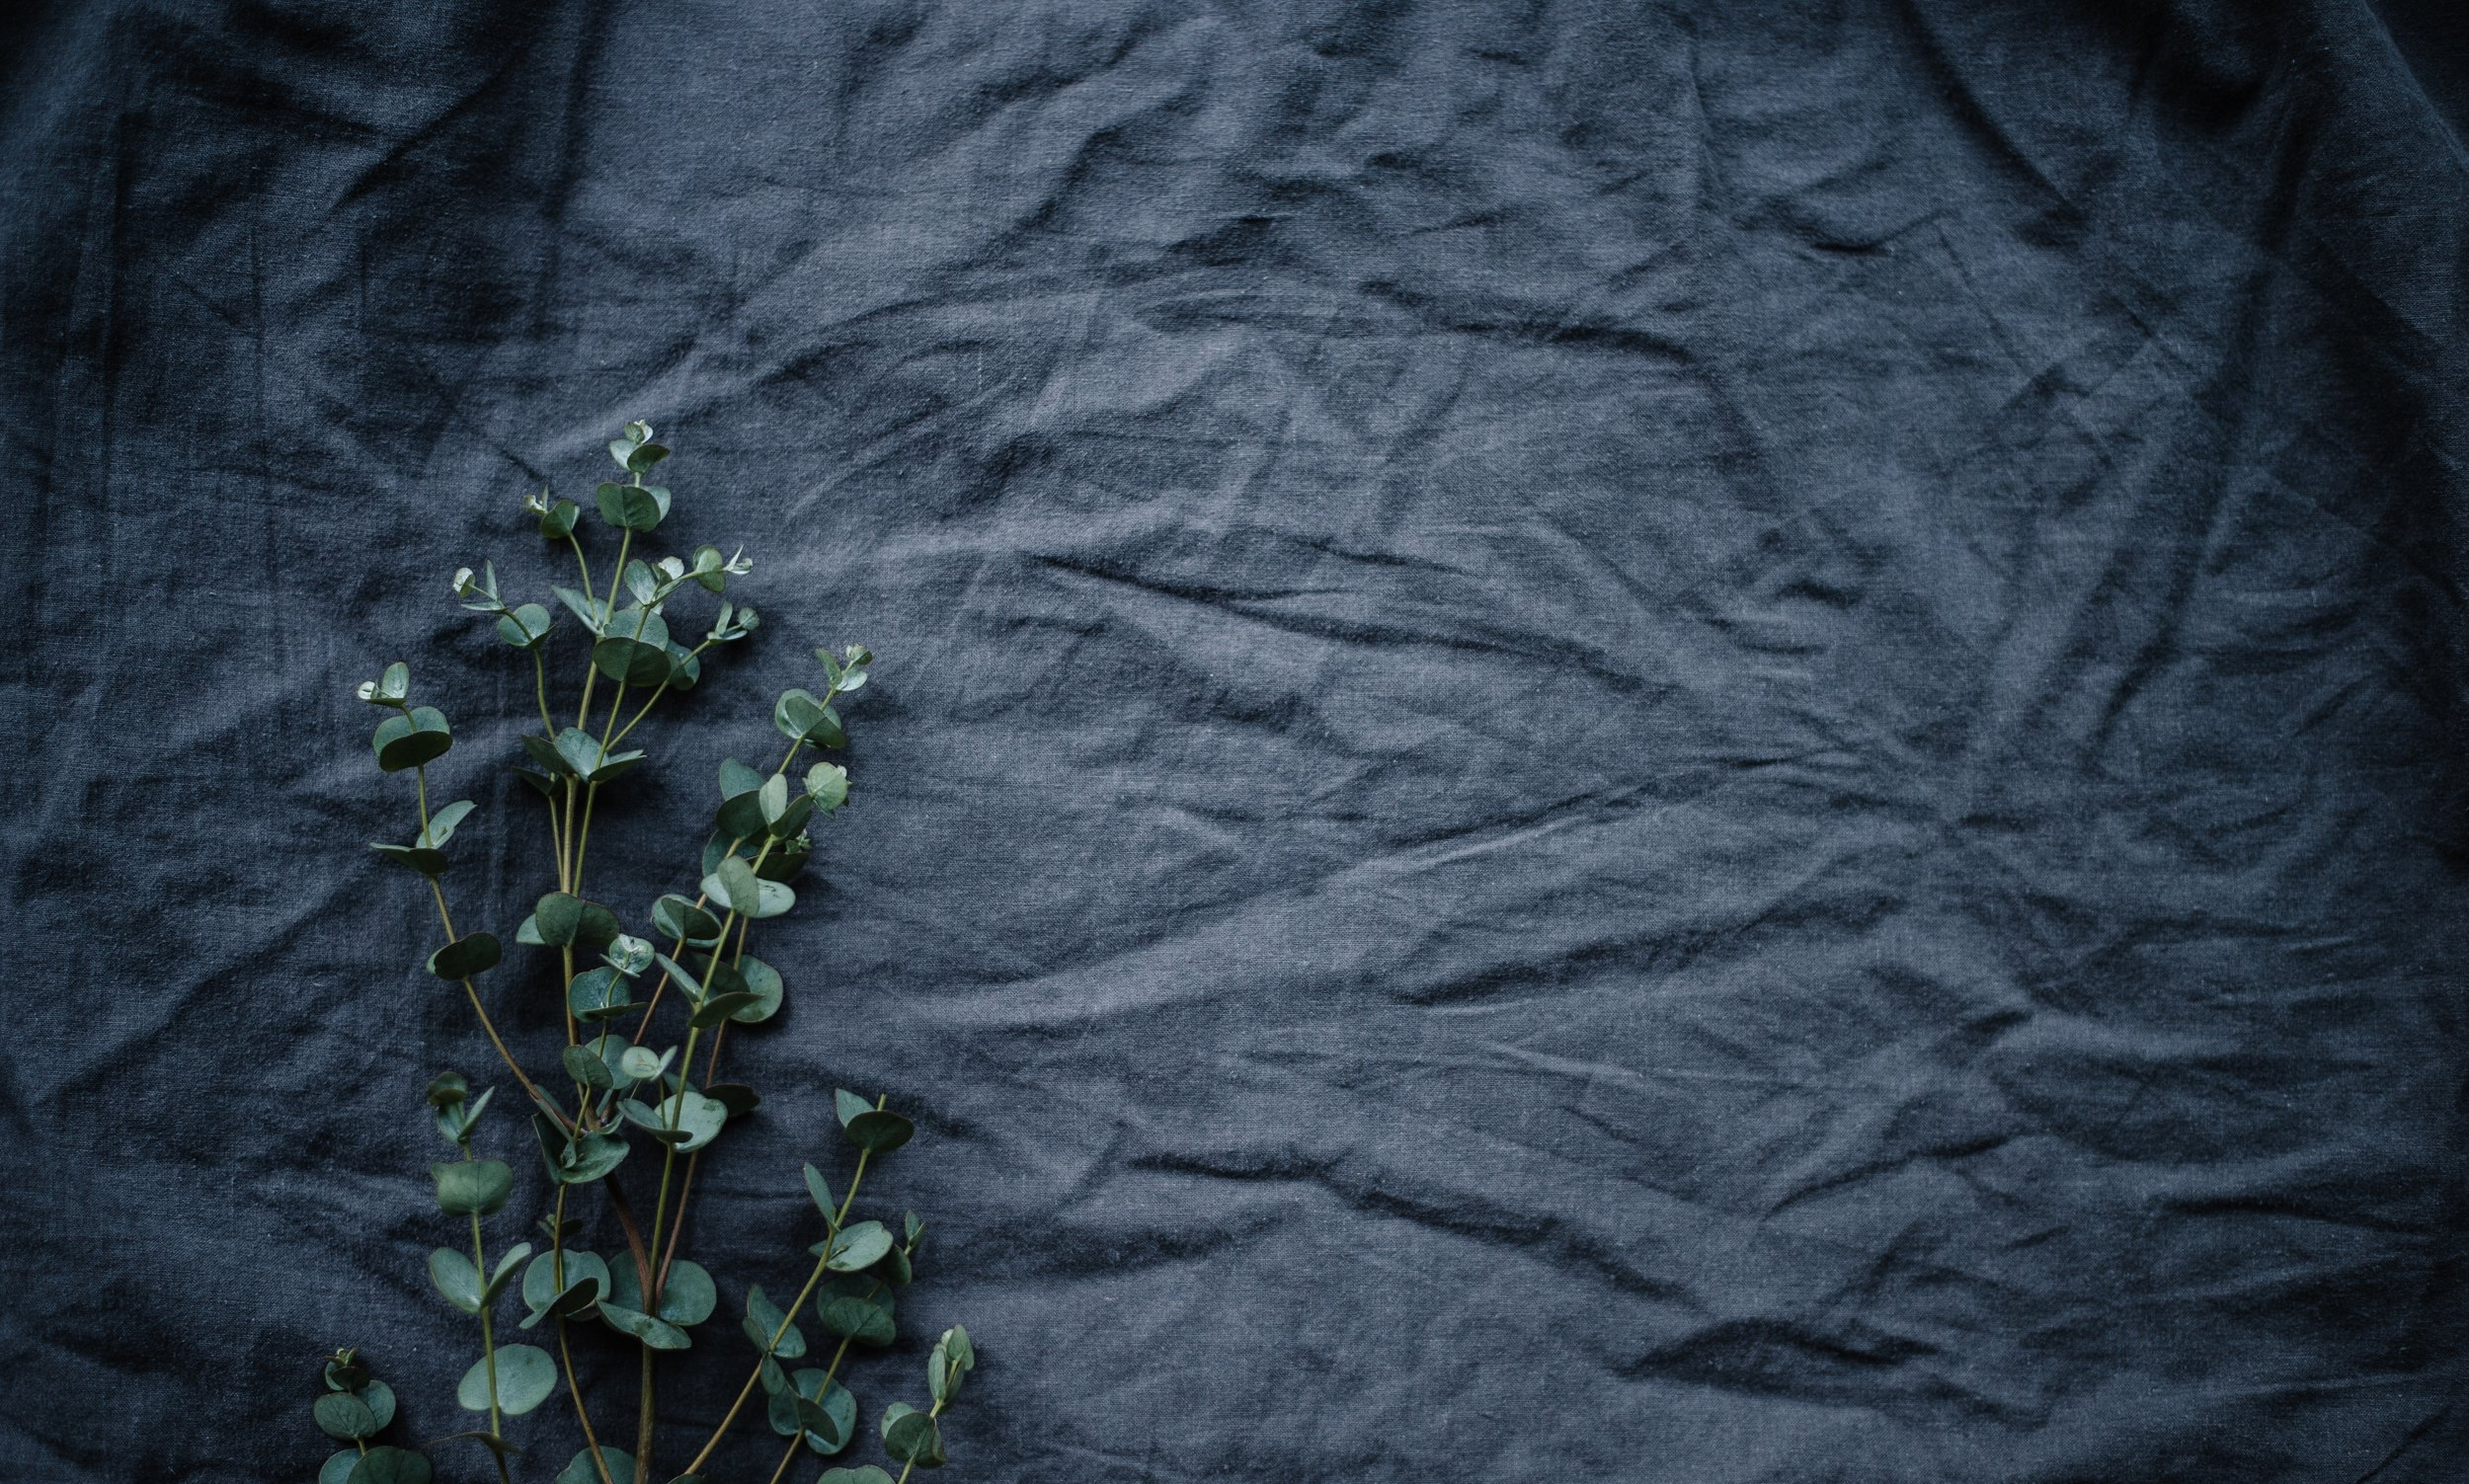 Eucalyptus branches laid over a wrinkled piece of navy blue linen